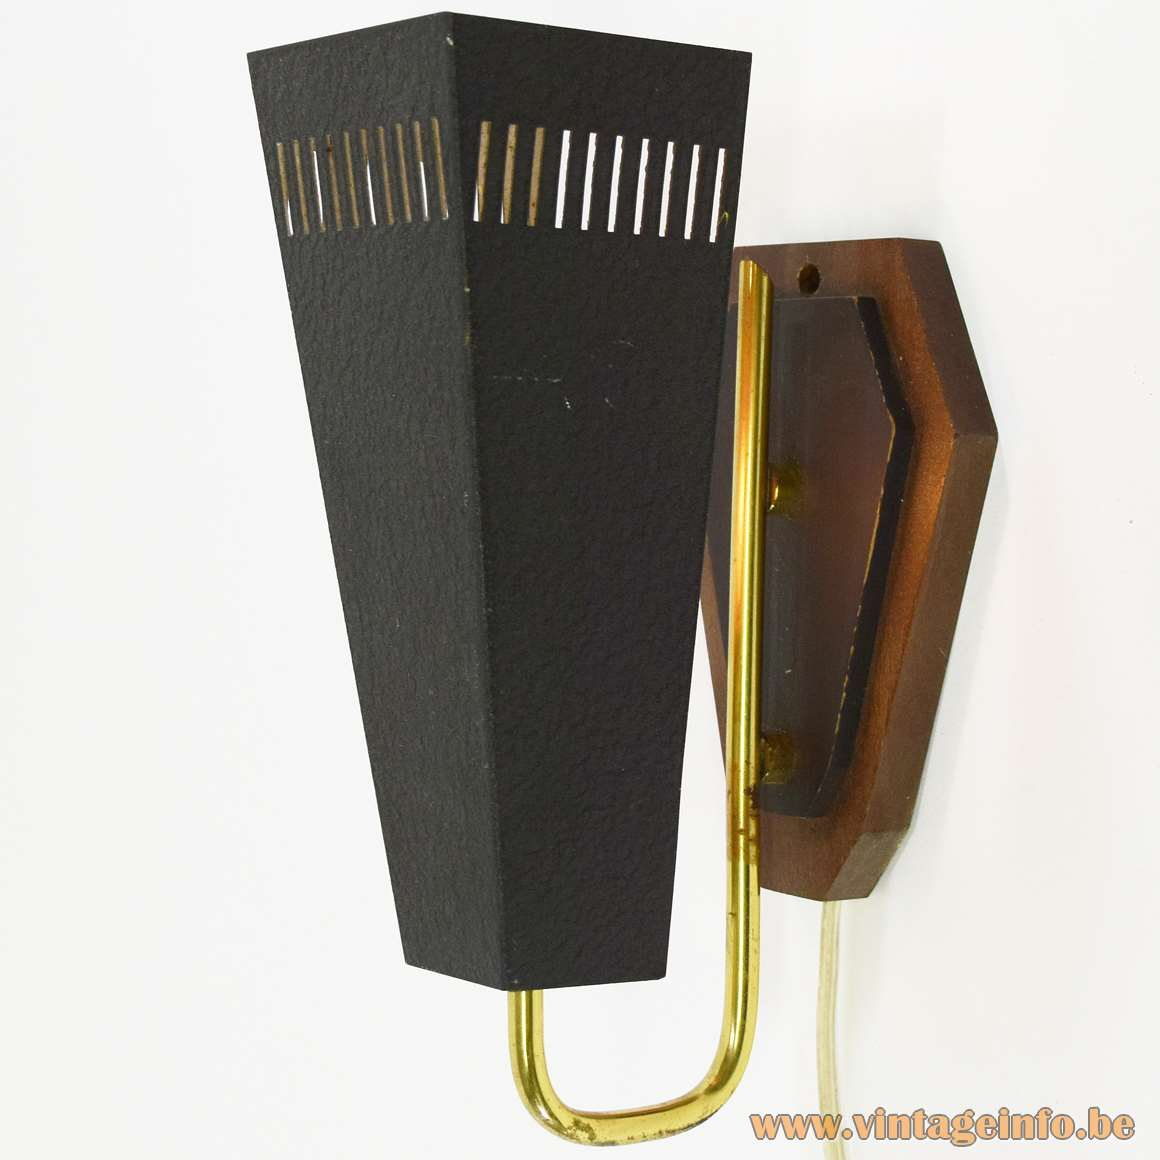 1950s Trapezium Wall Lamp black wrinkle paint brass curved rod wooden wall mount kite MCM 1960s